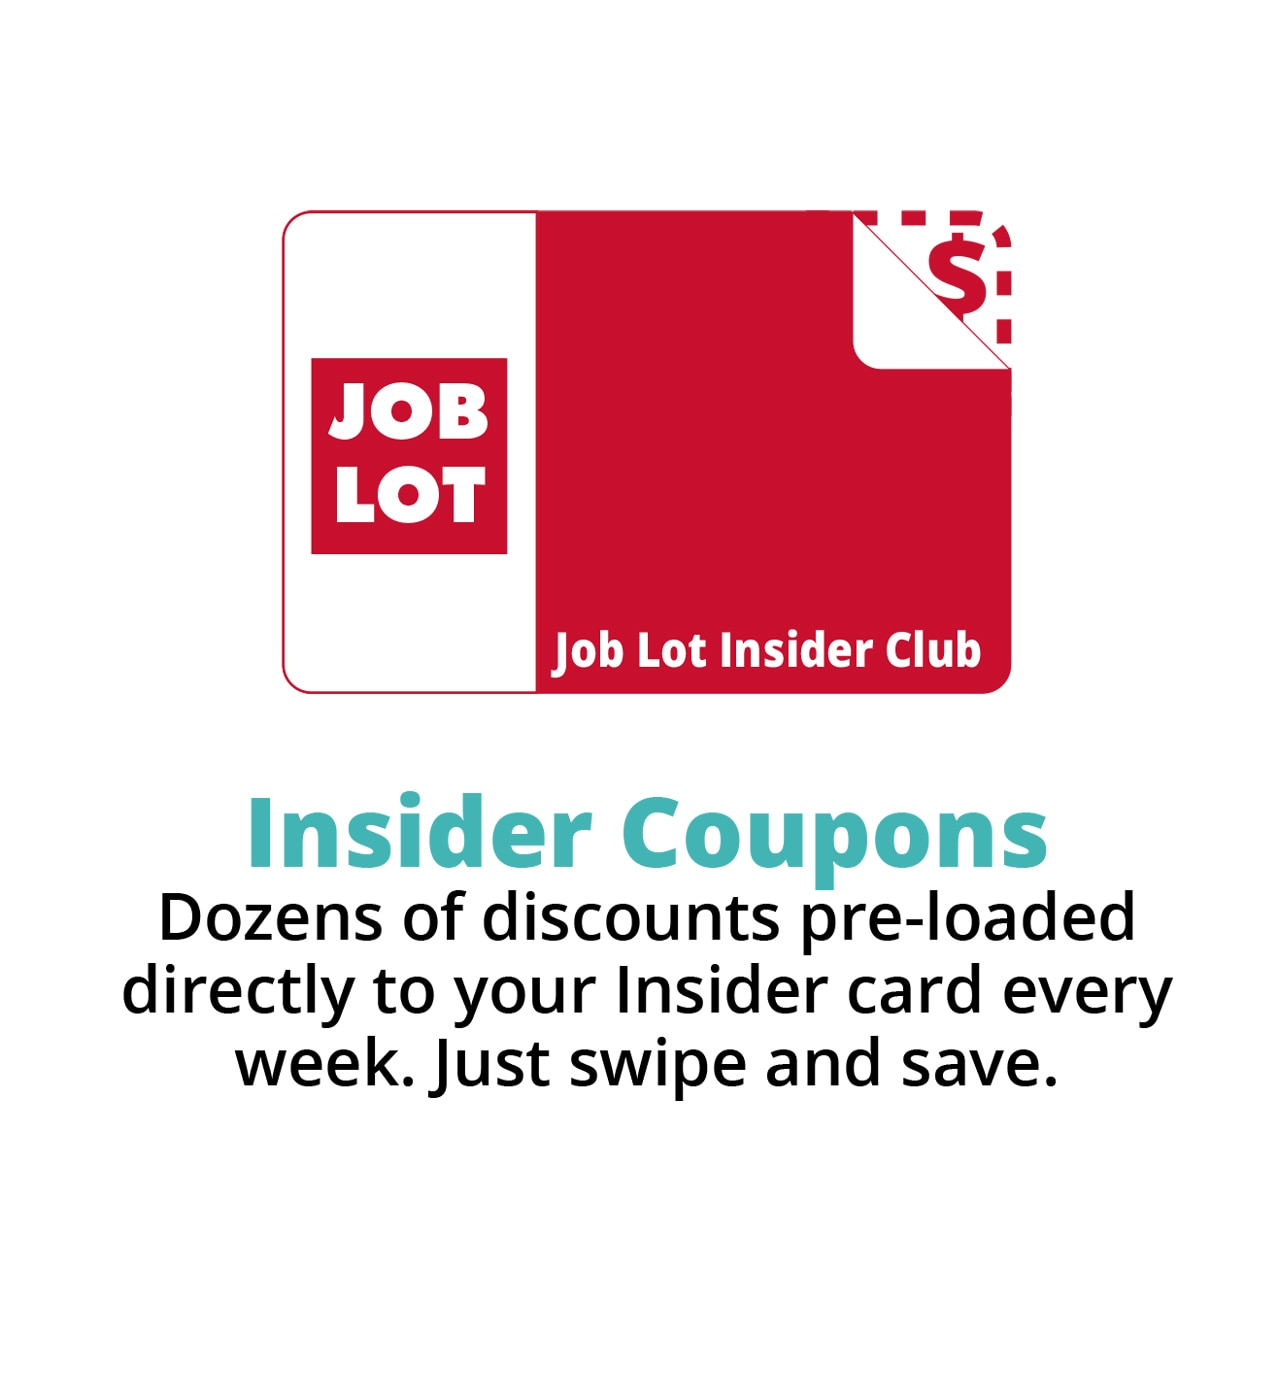 photograph about Ocean State Job Lot Coupons Printable known as Insider Club